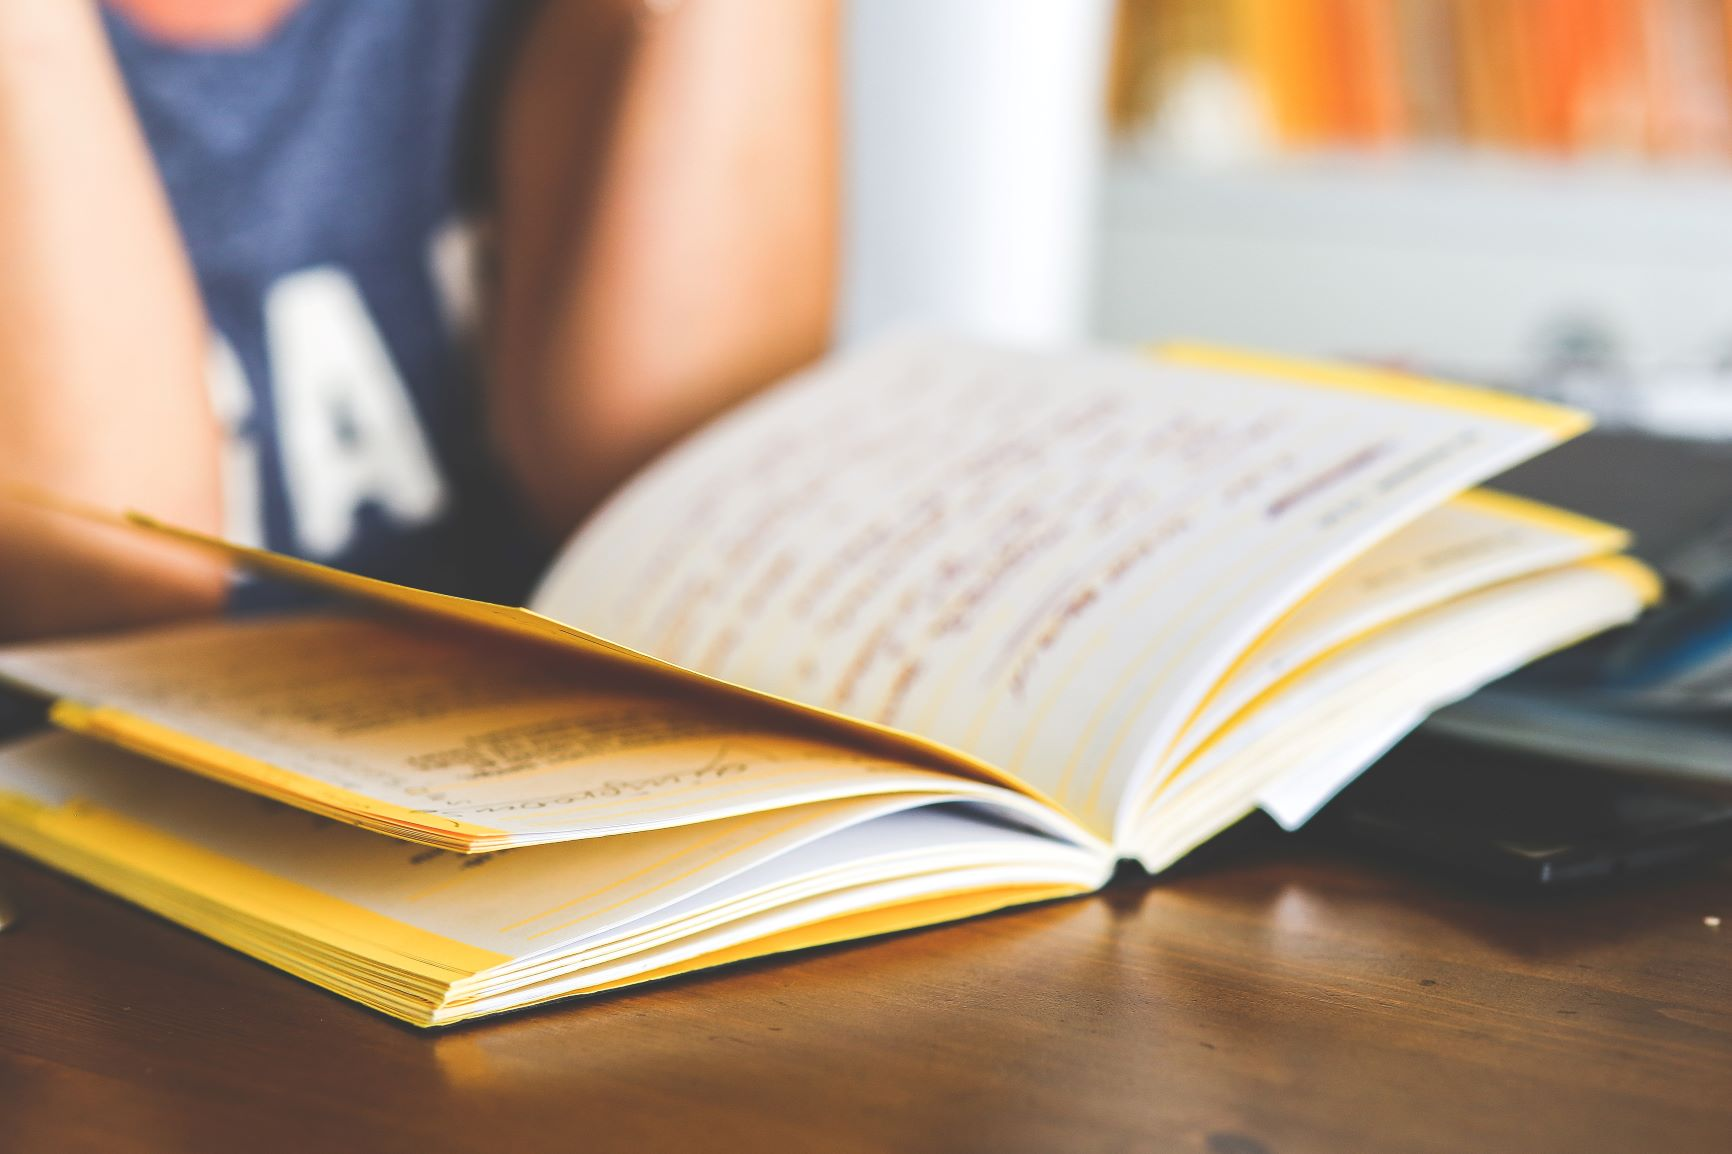 A woman reads from a yellow notebook